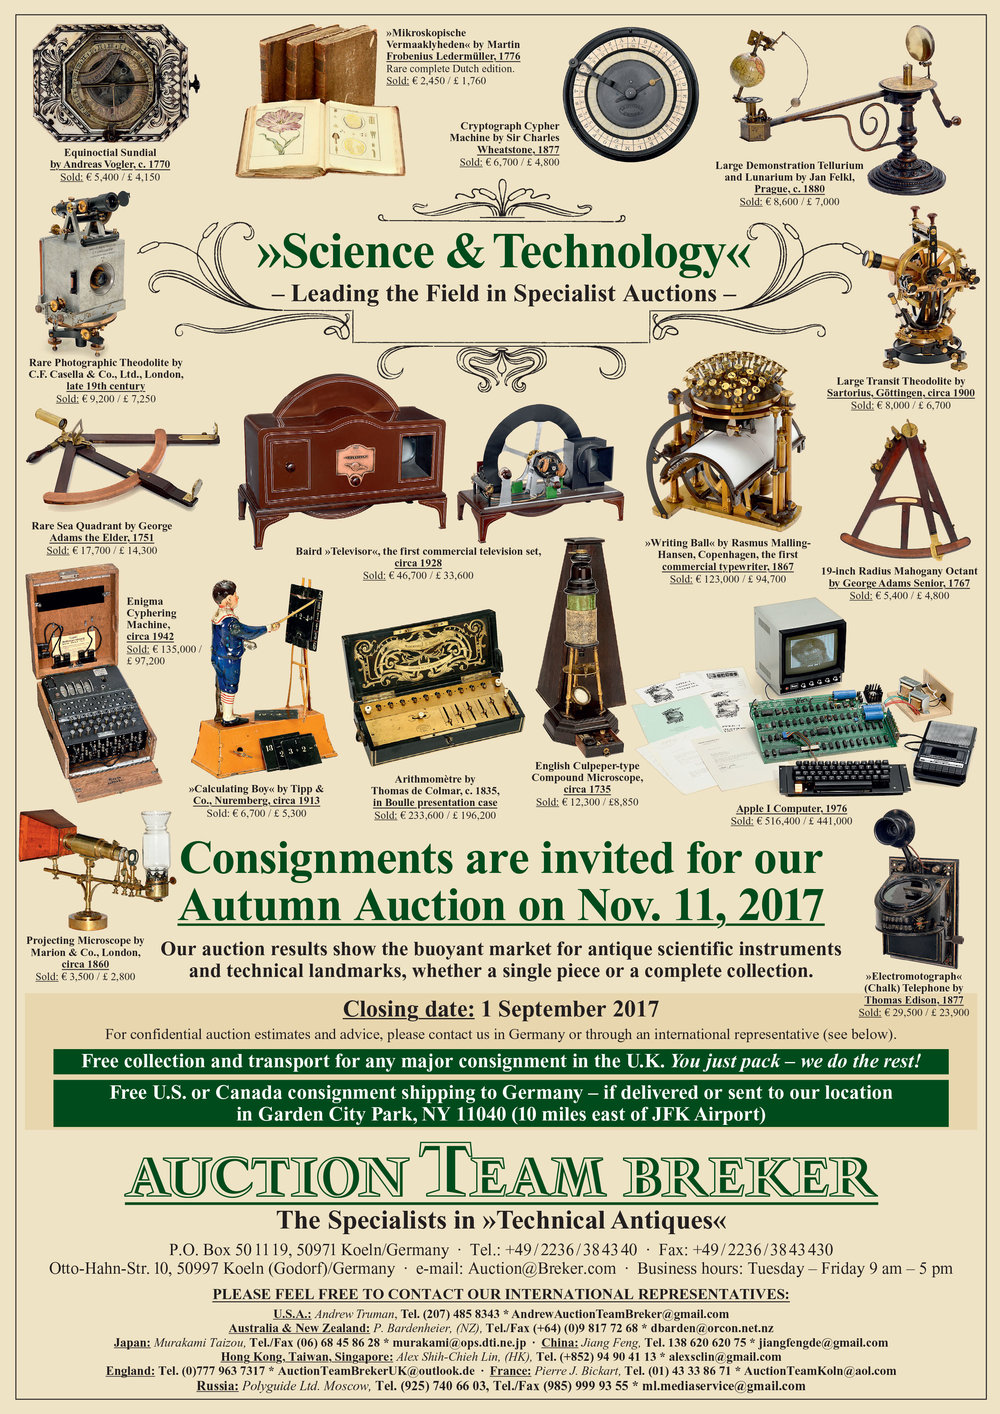 Visit Auction Team Breker